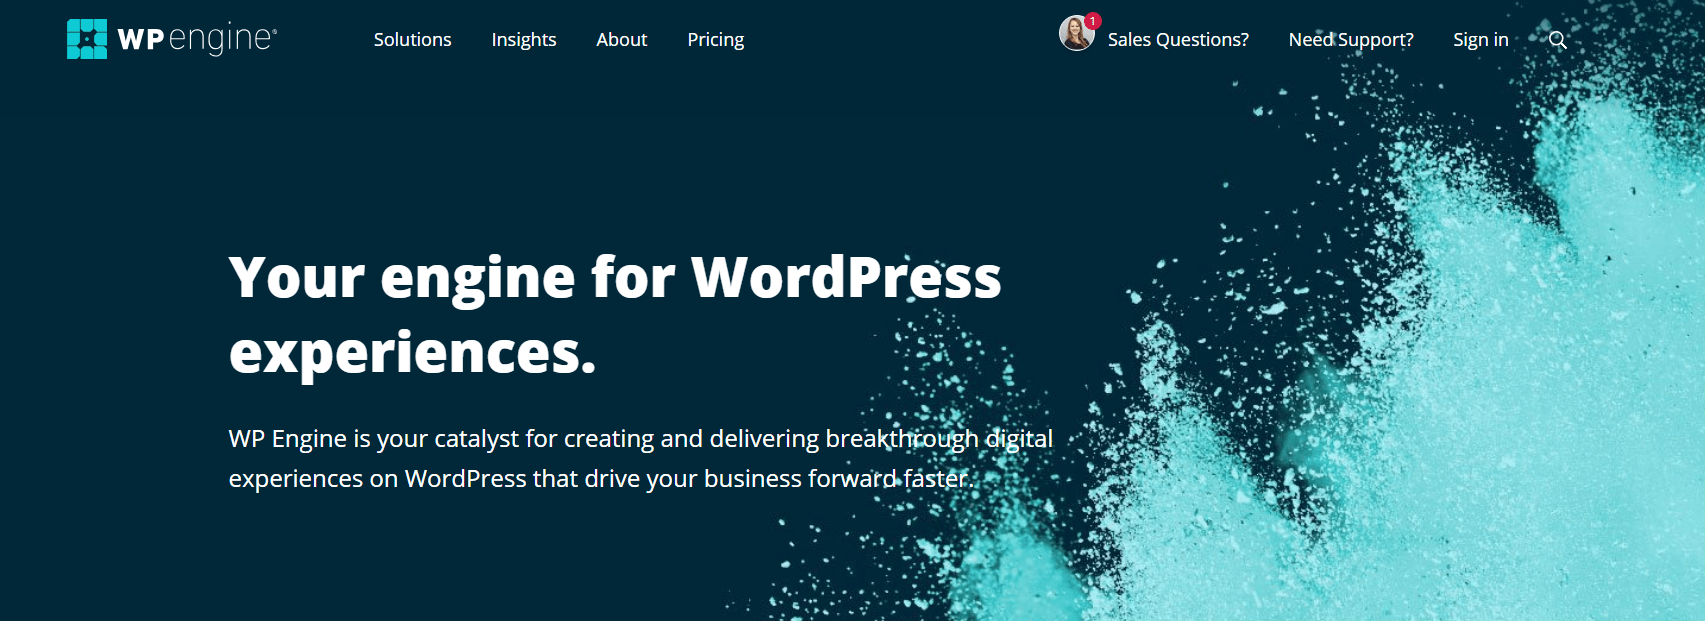 WP Engine WordPress Hosting Customer Helpline